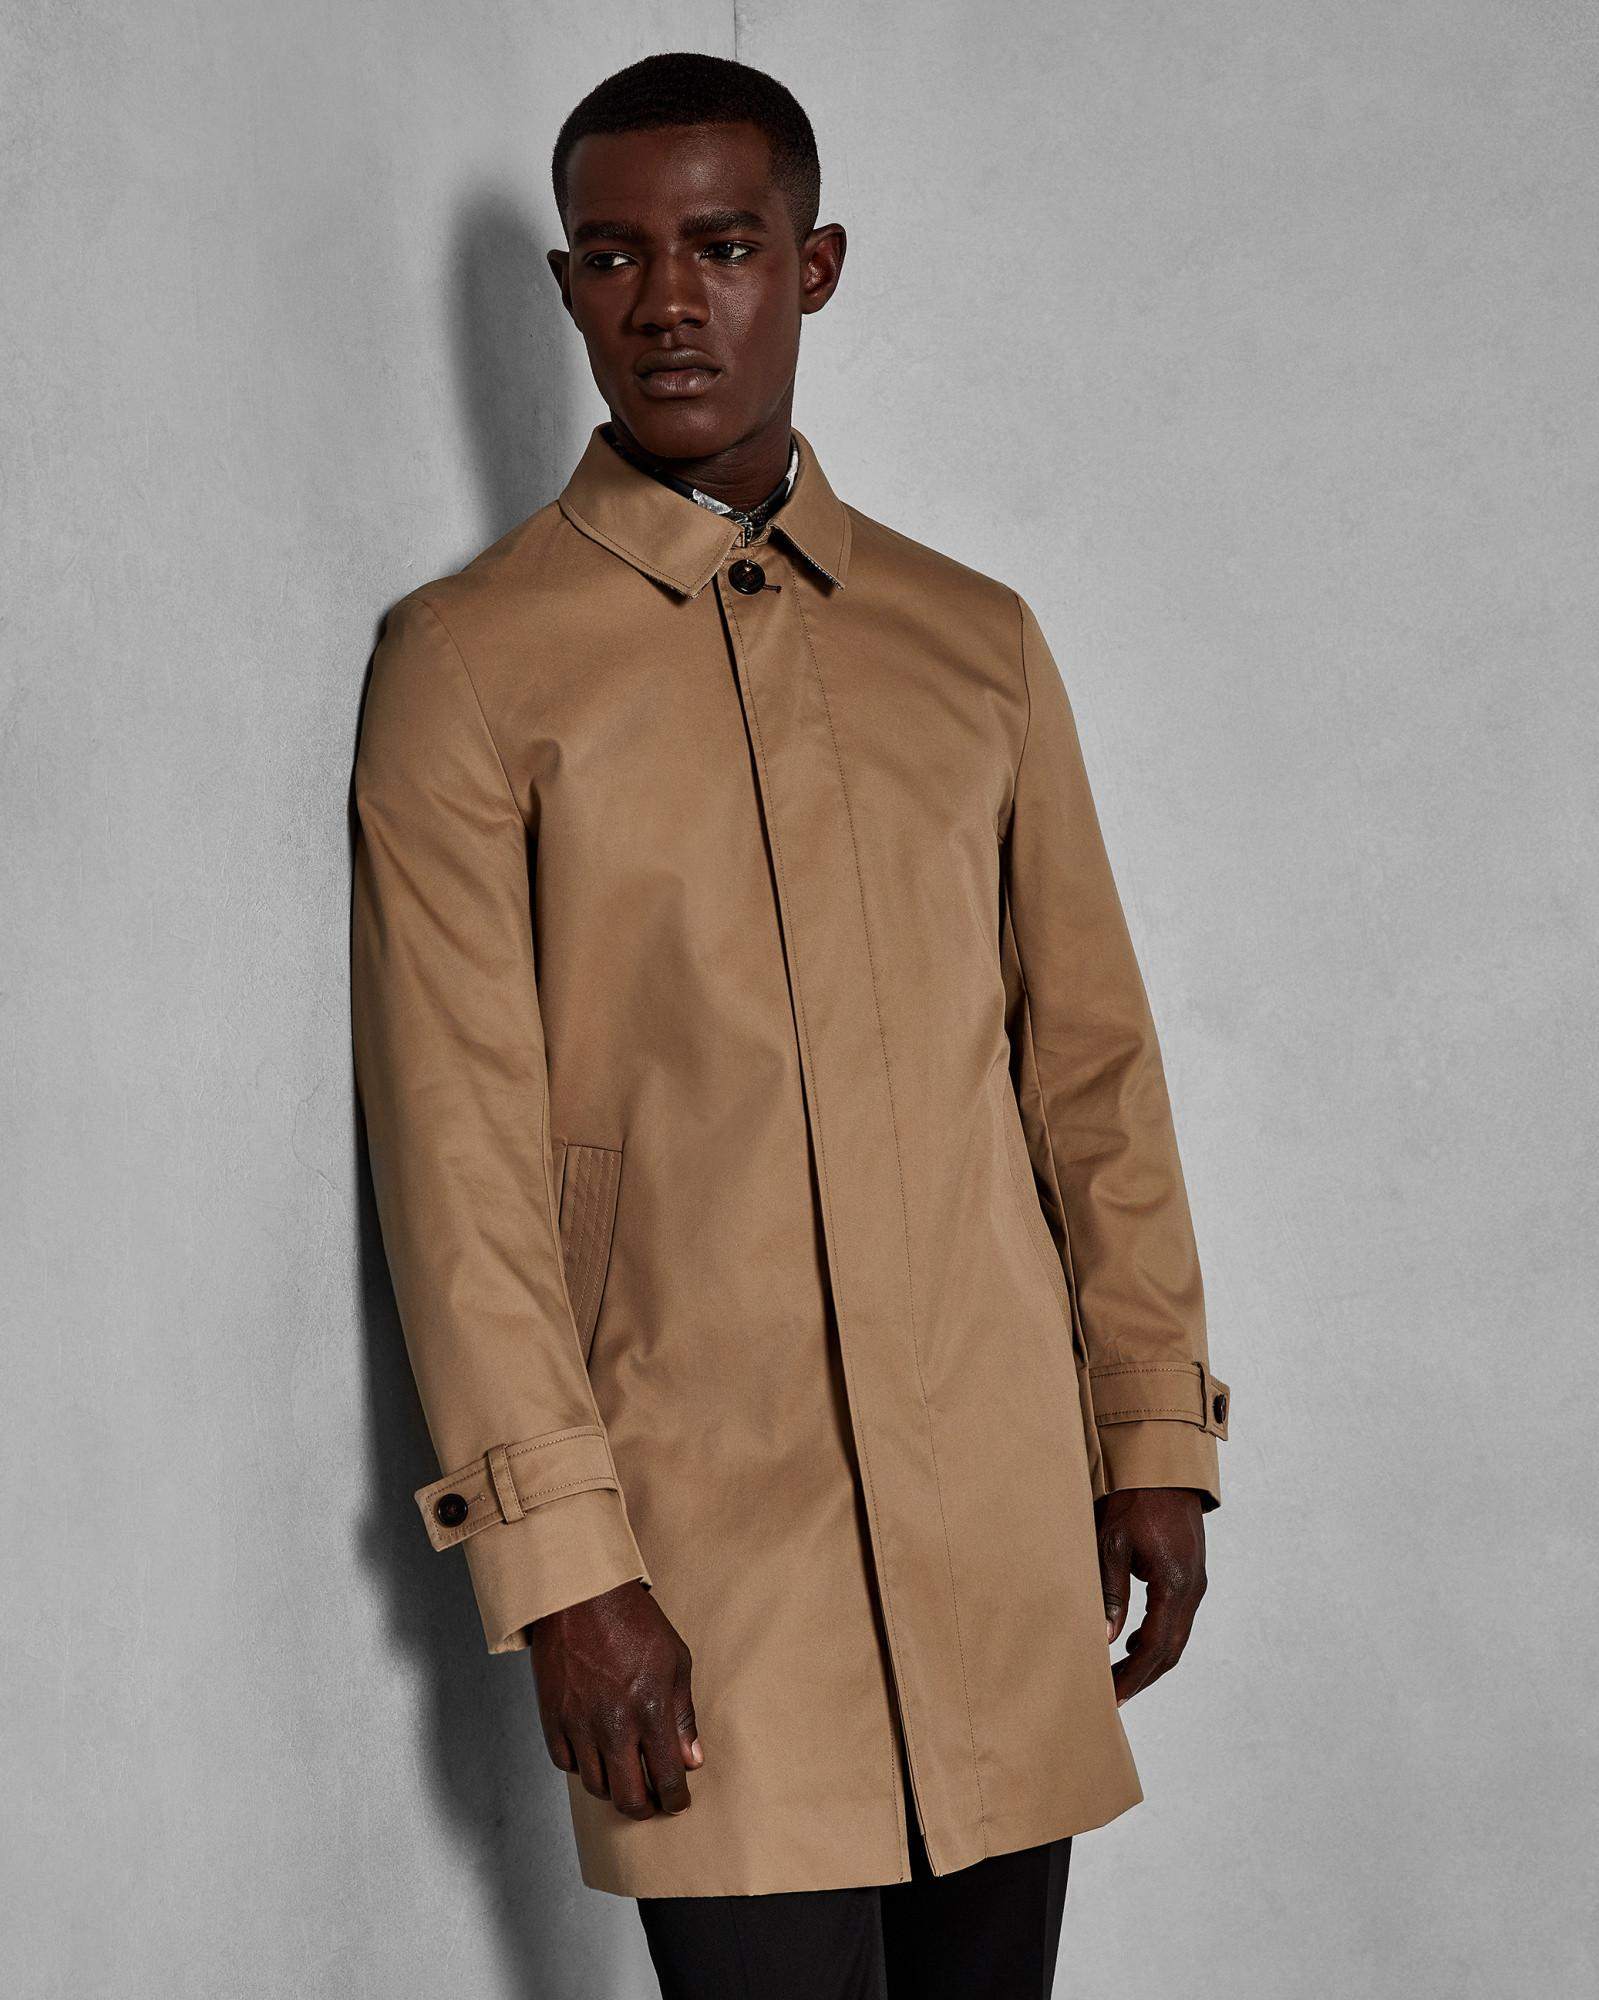 b3dafc76c Ted Baker Trench Coat in Natural for Men - Lyst